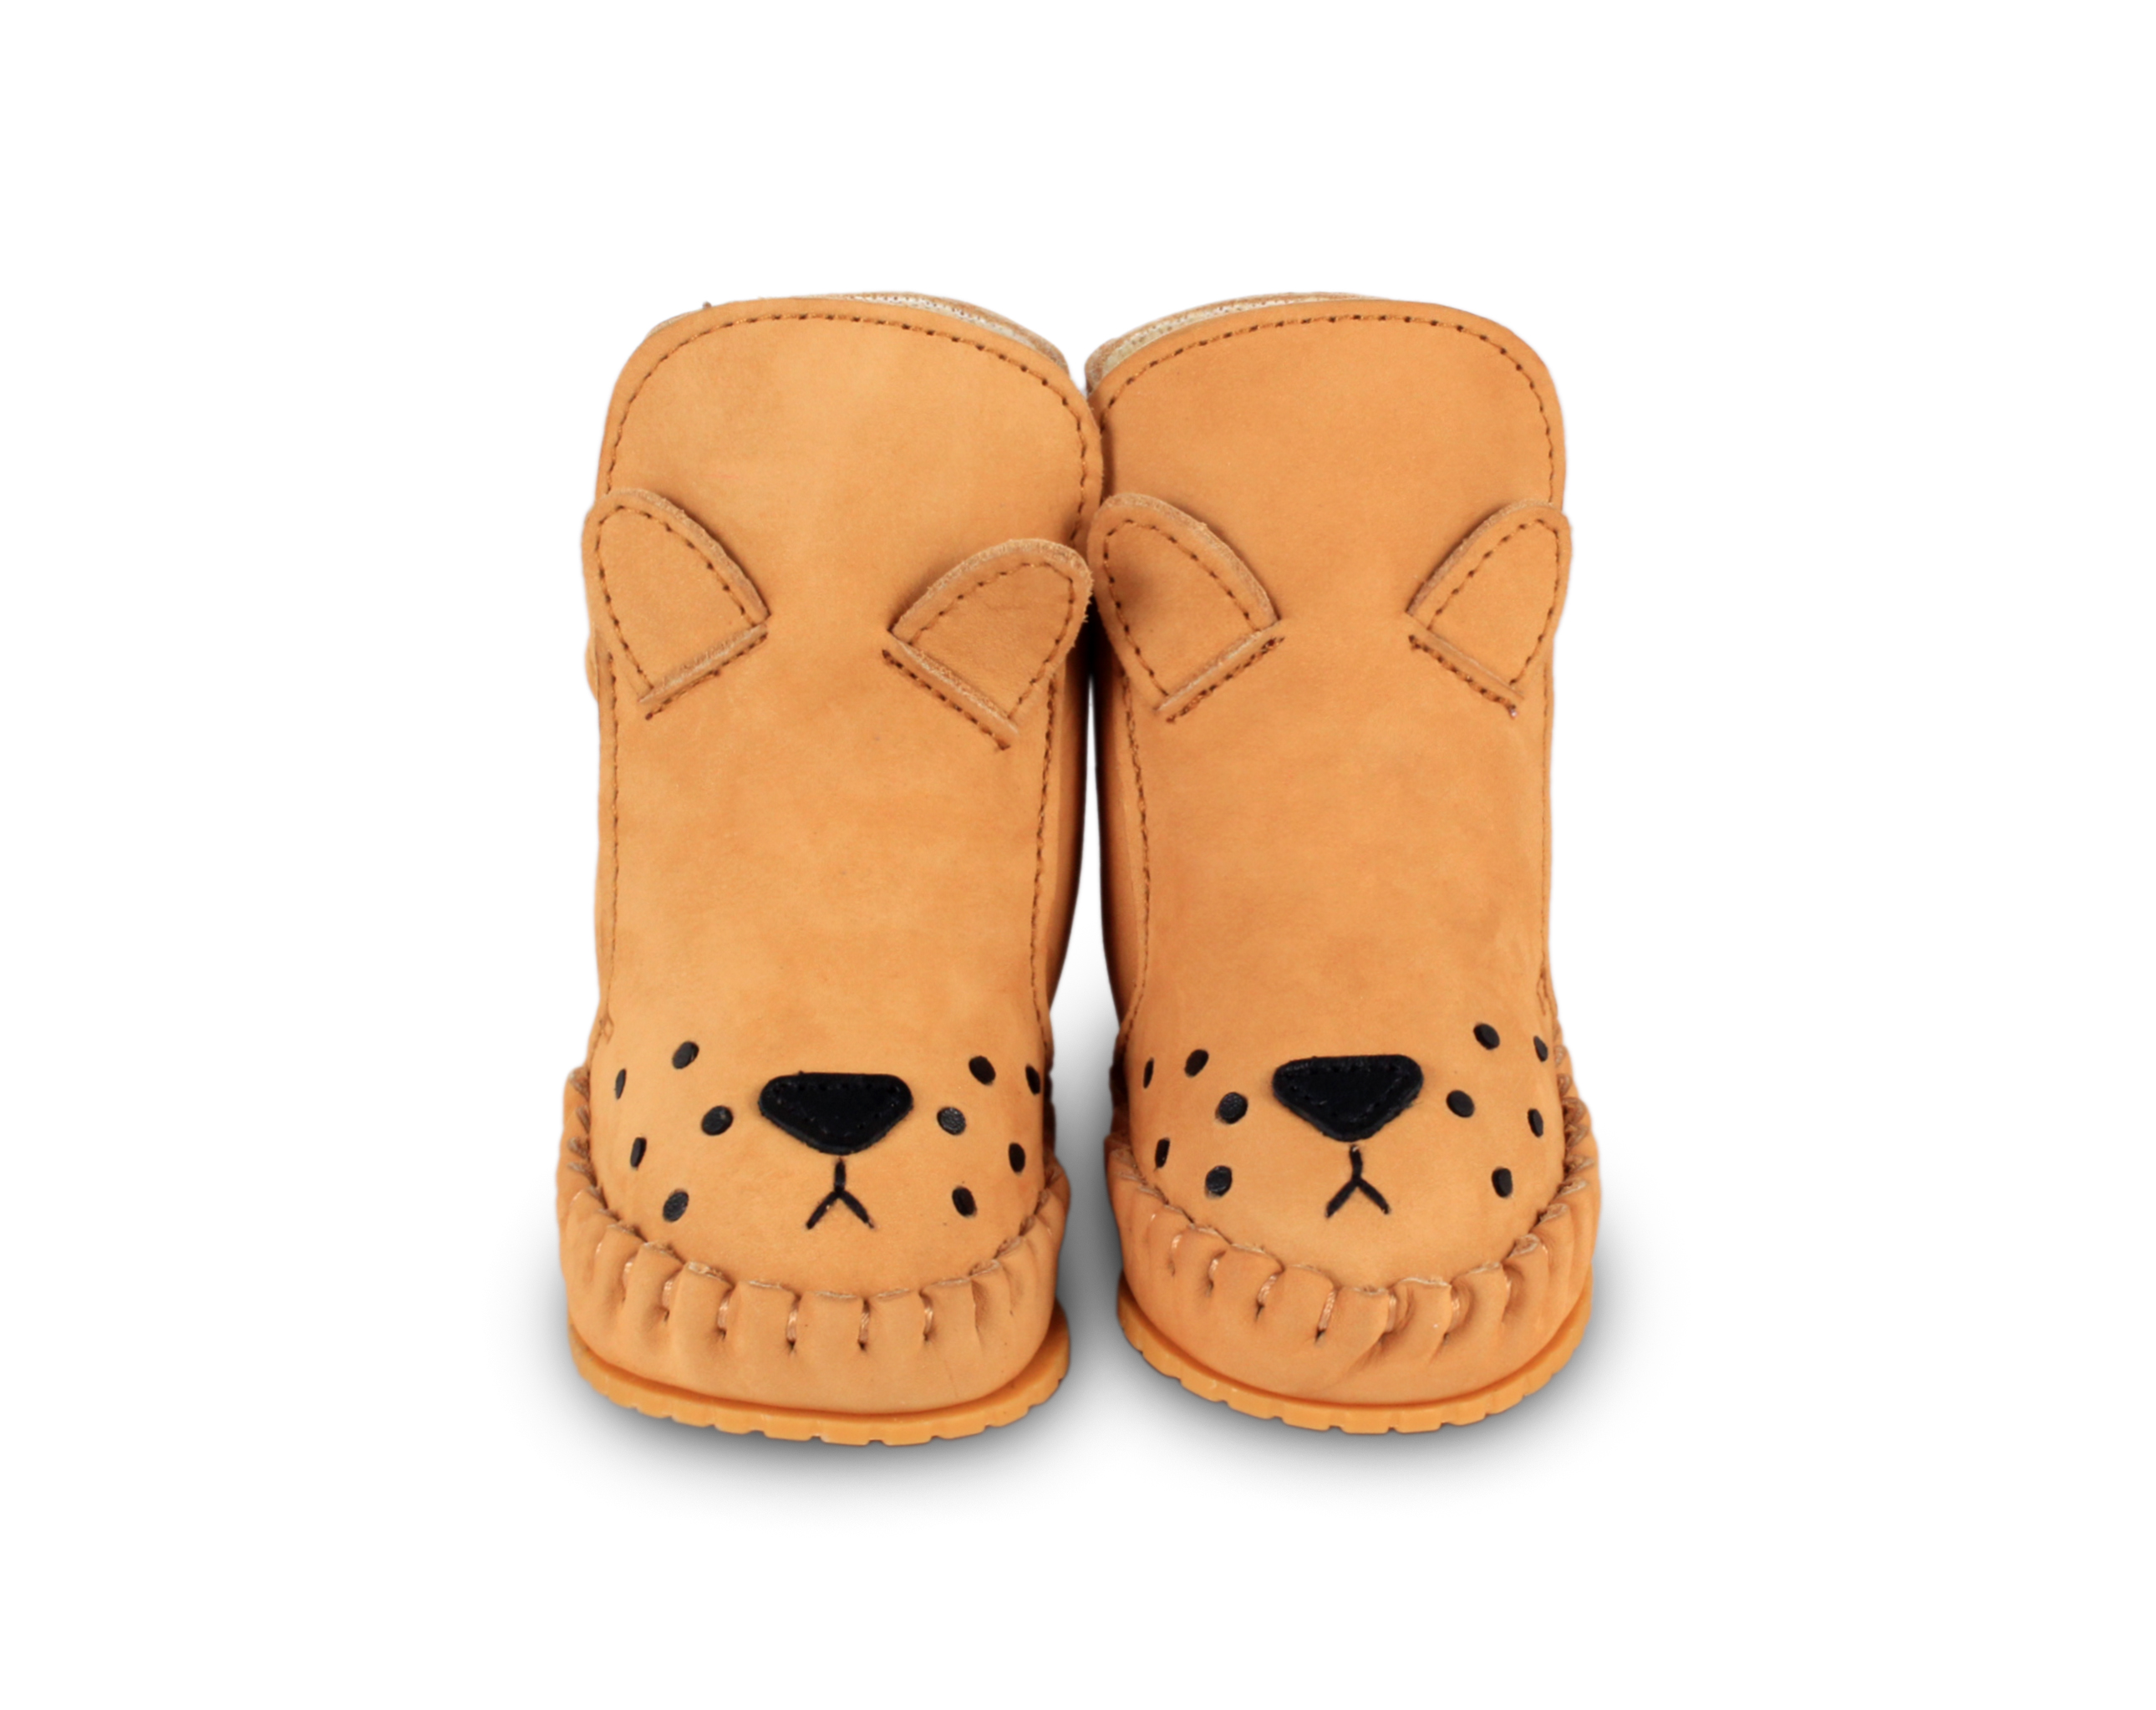 Donsje Camel - Kapi Lining  Baby Shoes Lion - Footware